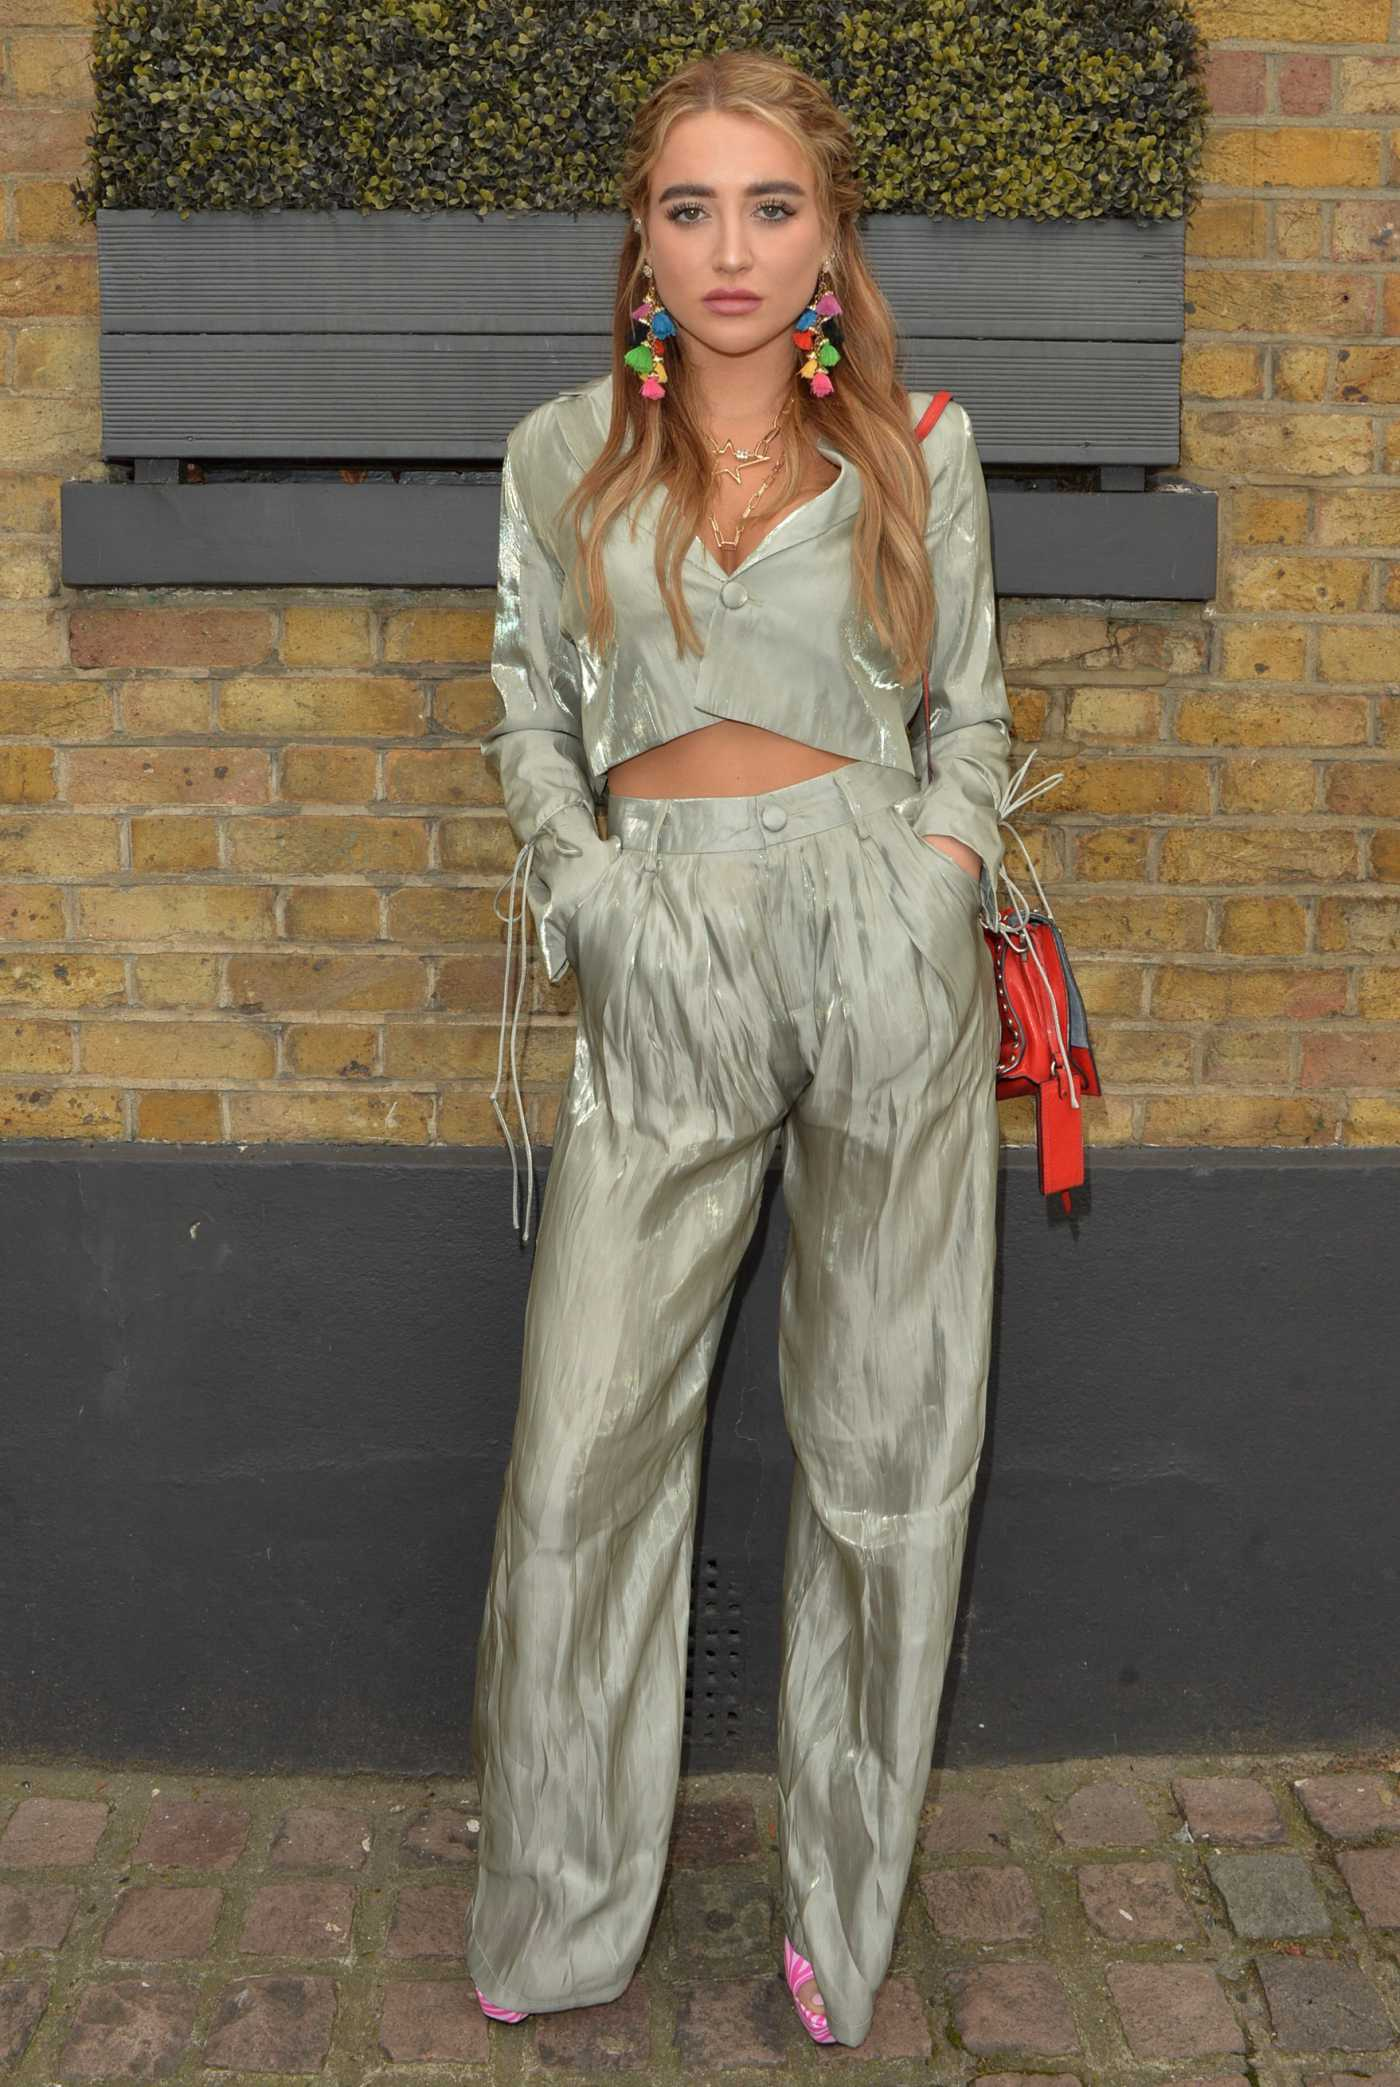 Georgia Harrison in an Olive Pantsuit Arrives at Gallery Bar in Essex 10/11/2021